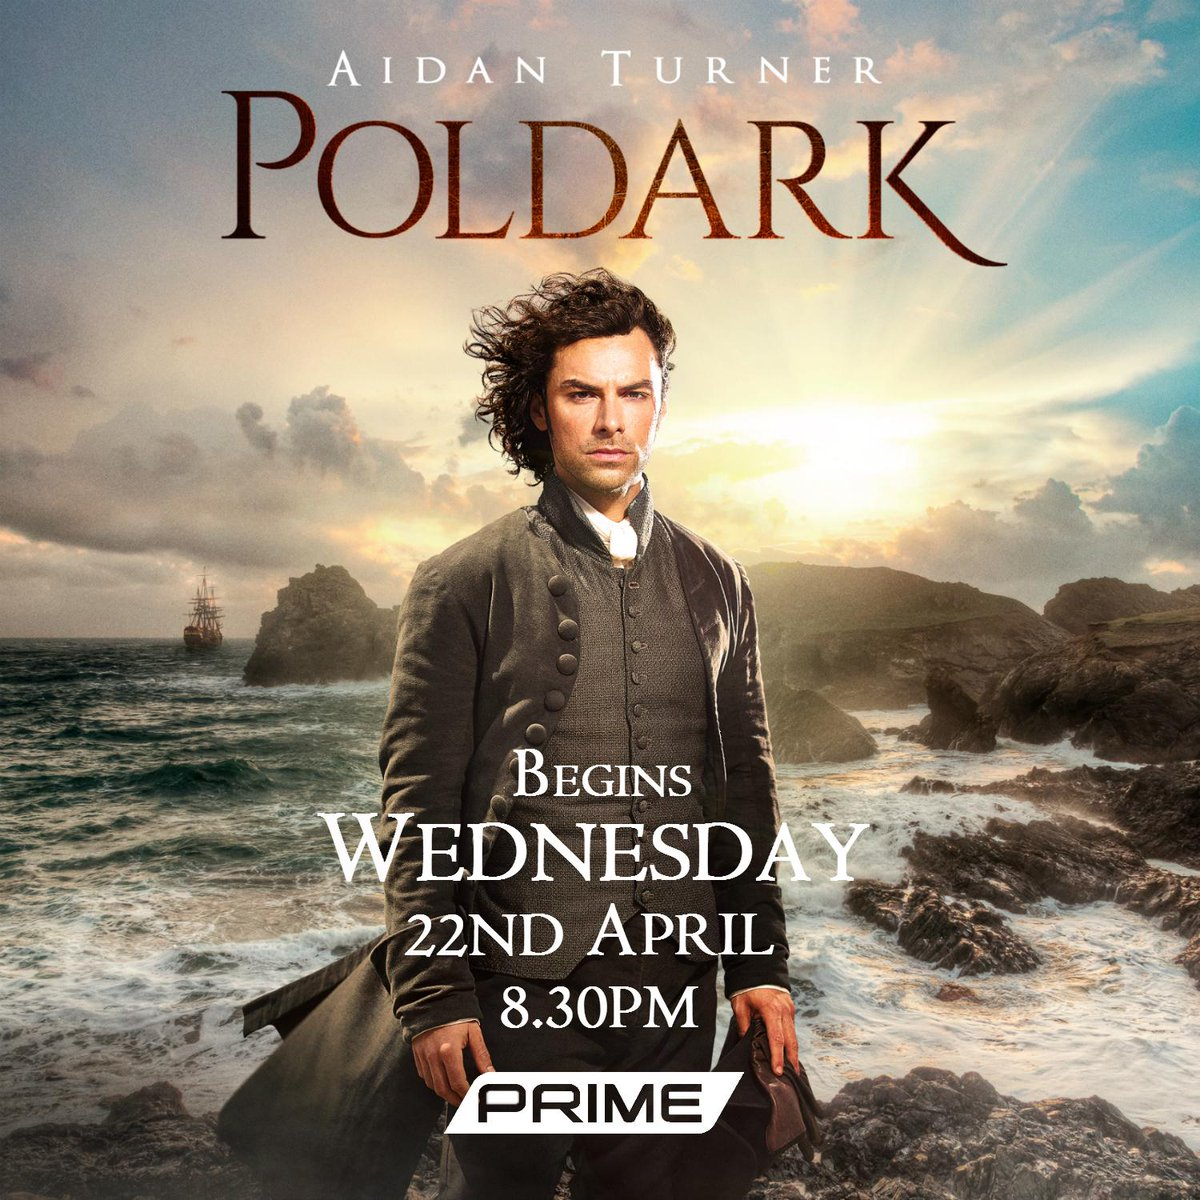 Epic new saga #Poldark begins in NZ from Wed April 22nd, 8.30pm on @Primetv_NZ! @PoldarkTV @AidanTurner http://t.co/J43ft3sJO4